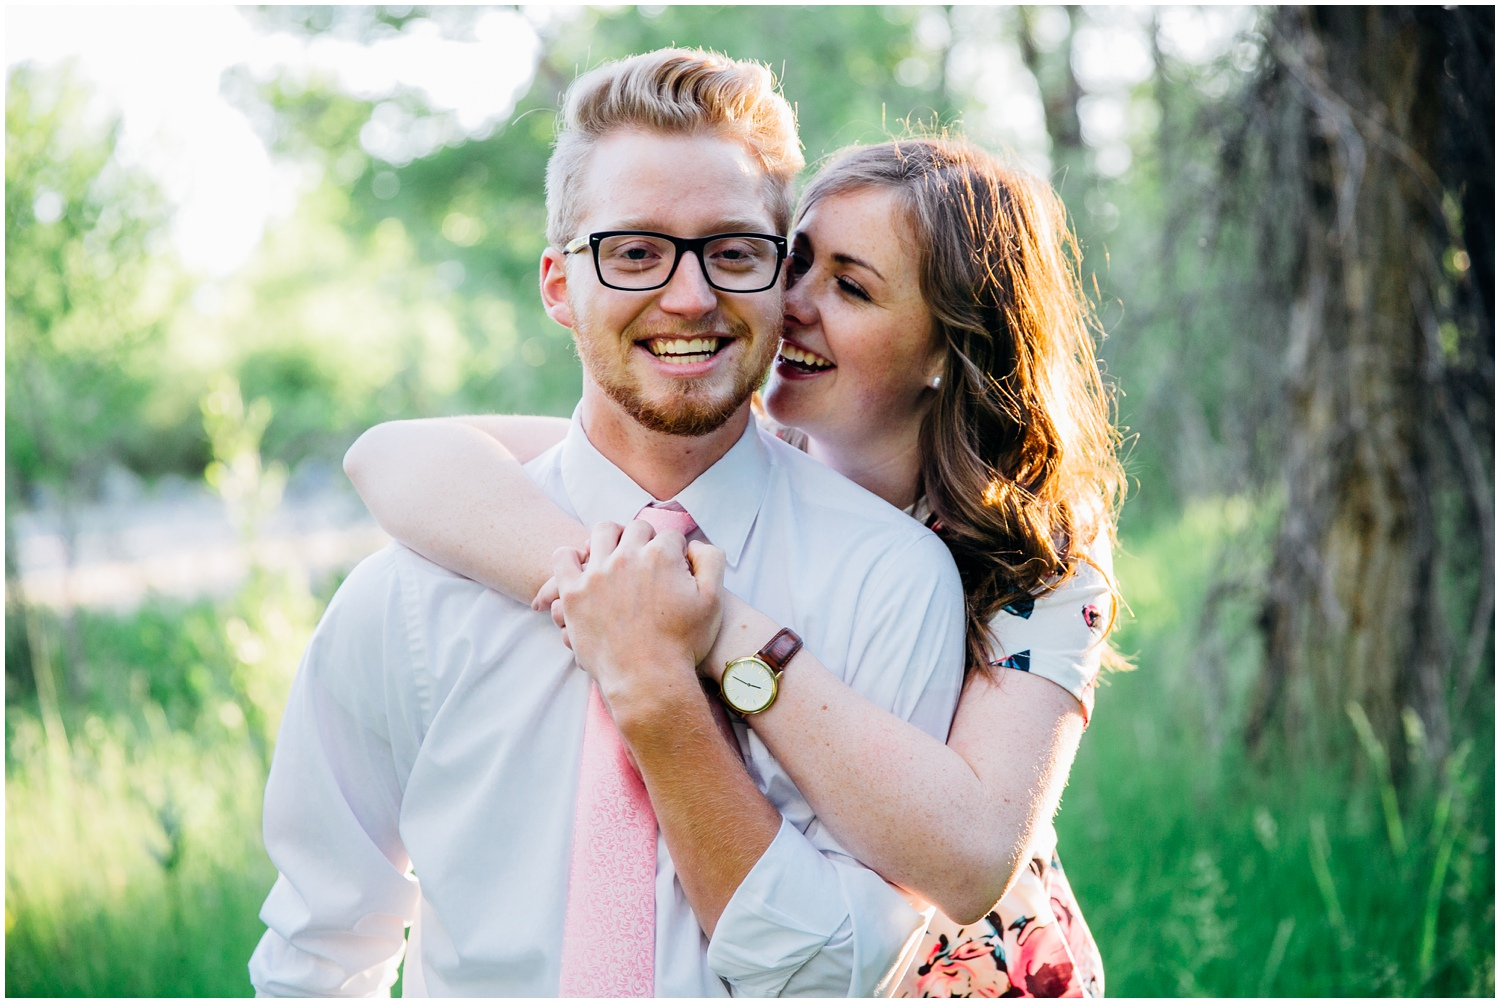 rigby-ririe-engagements-idaho-wyoming-wedding-photographer_1357.jpg